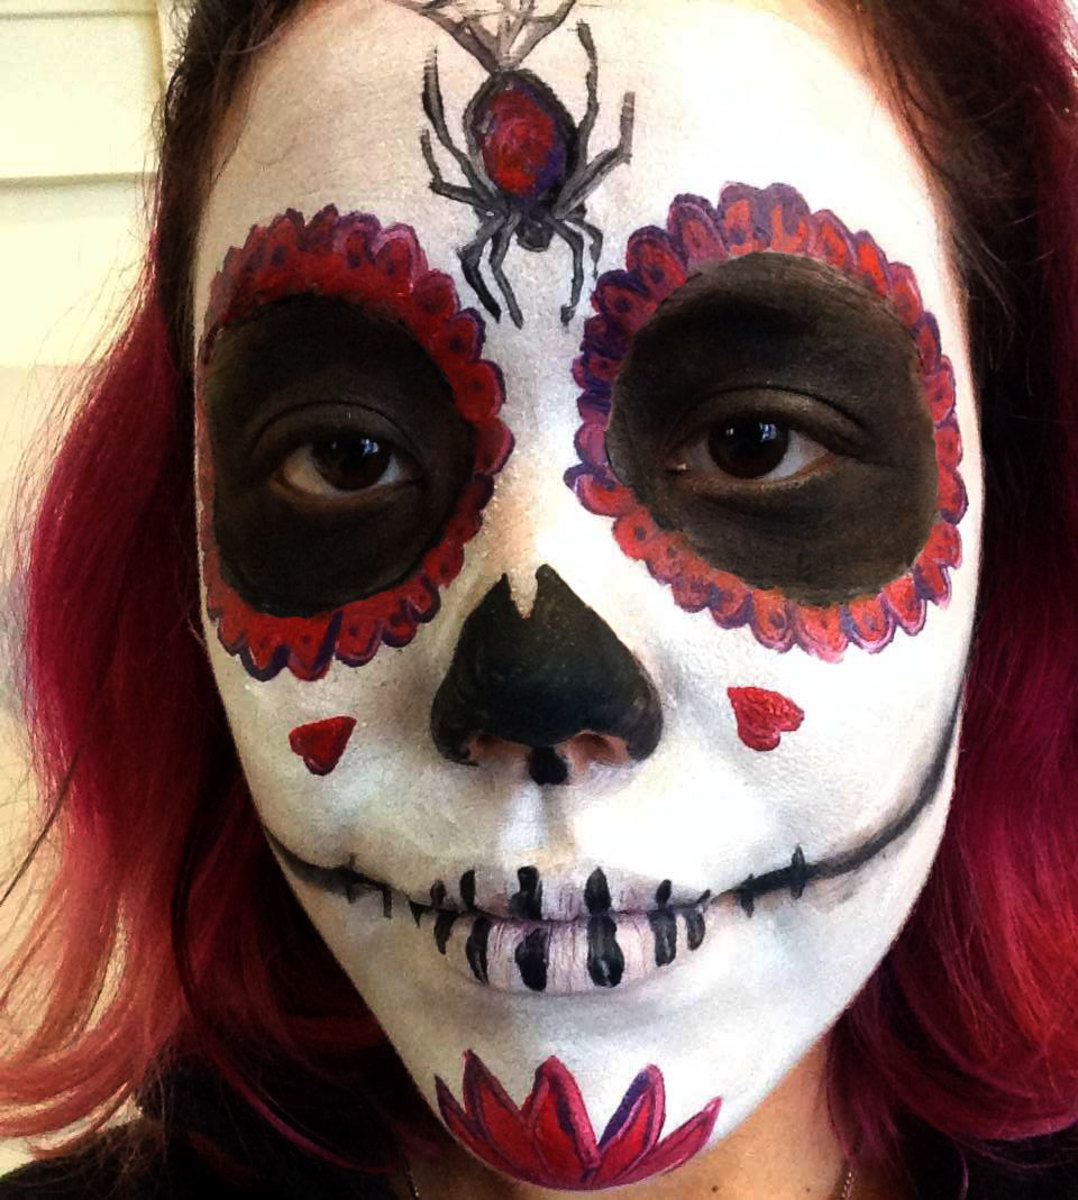 Embellish your sugar skull with touches such as spiders, hearts, and flowers.